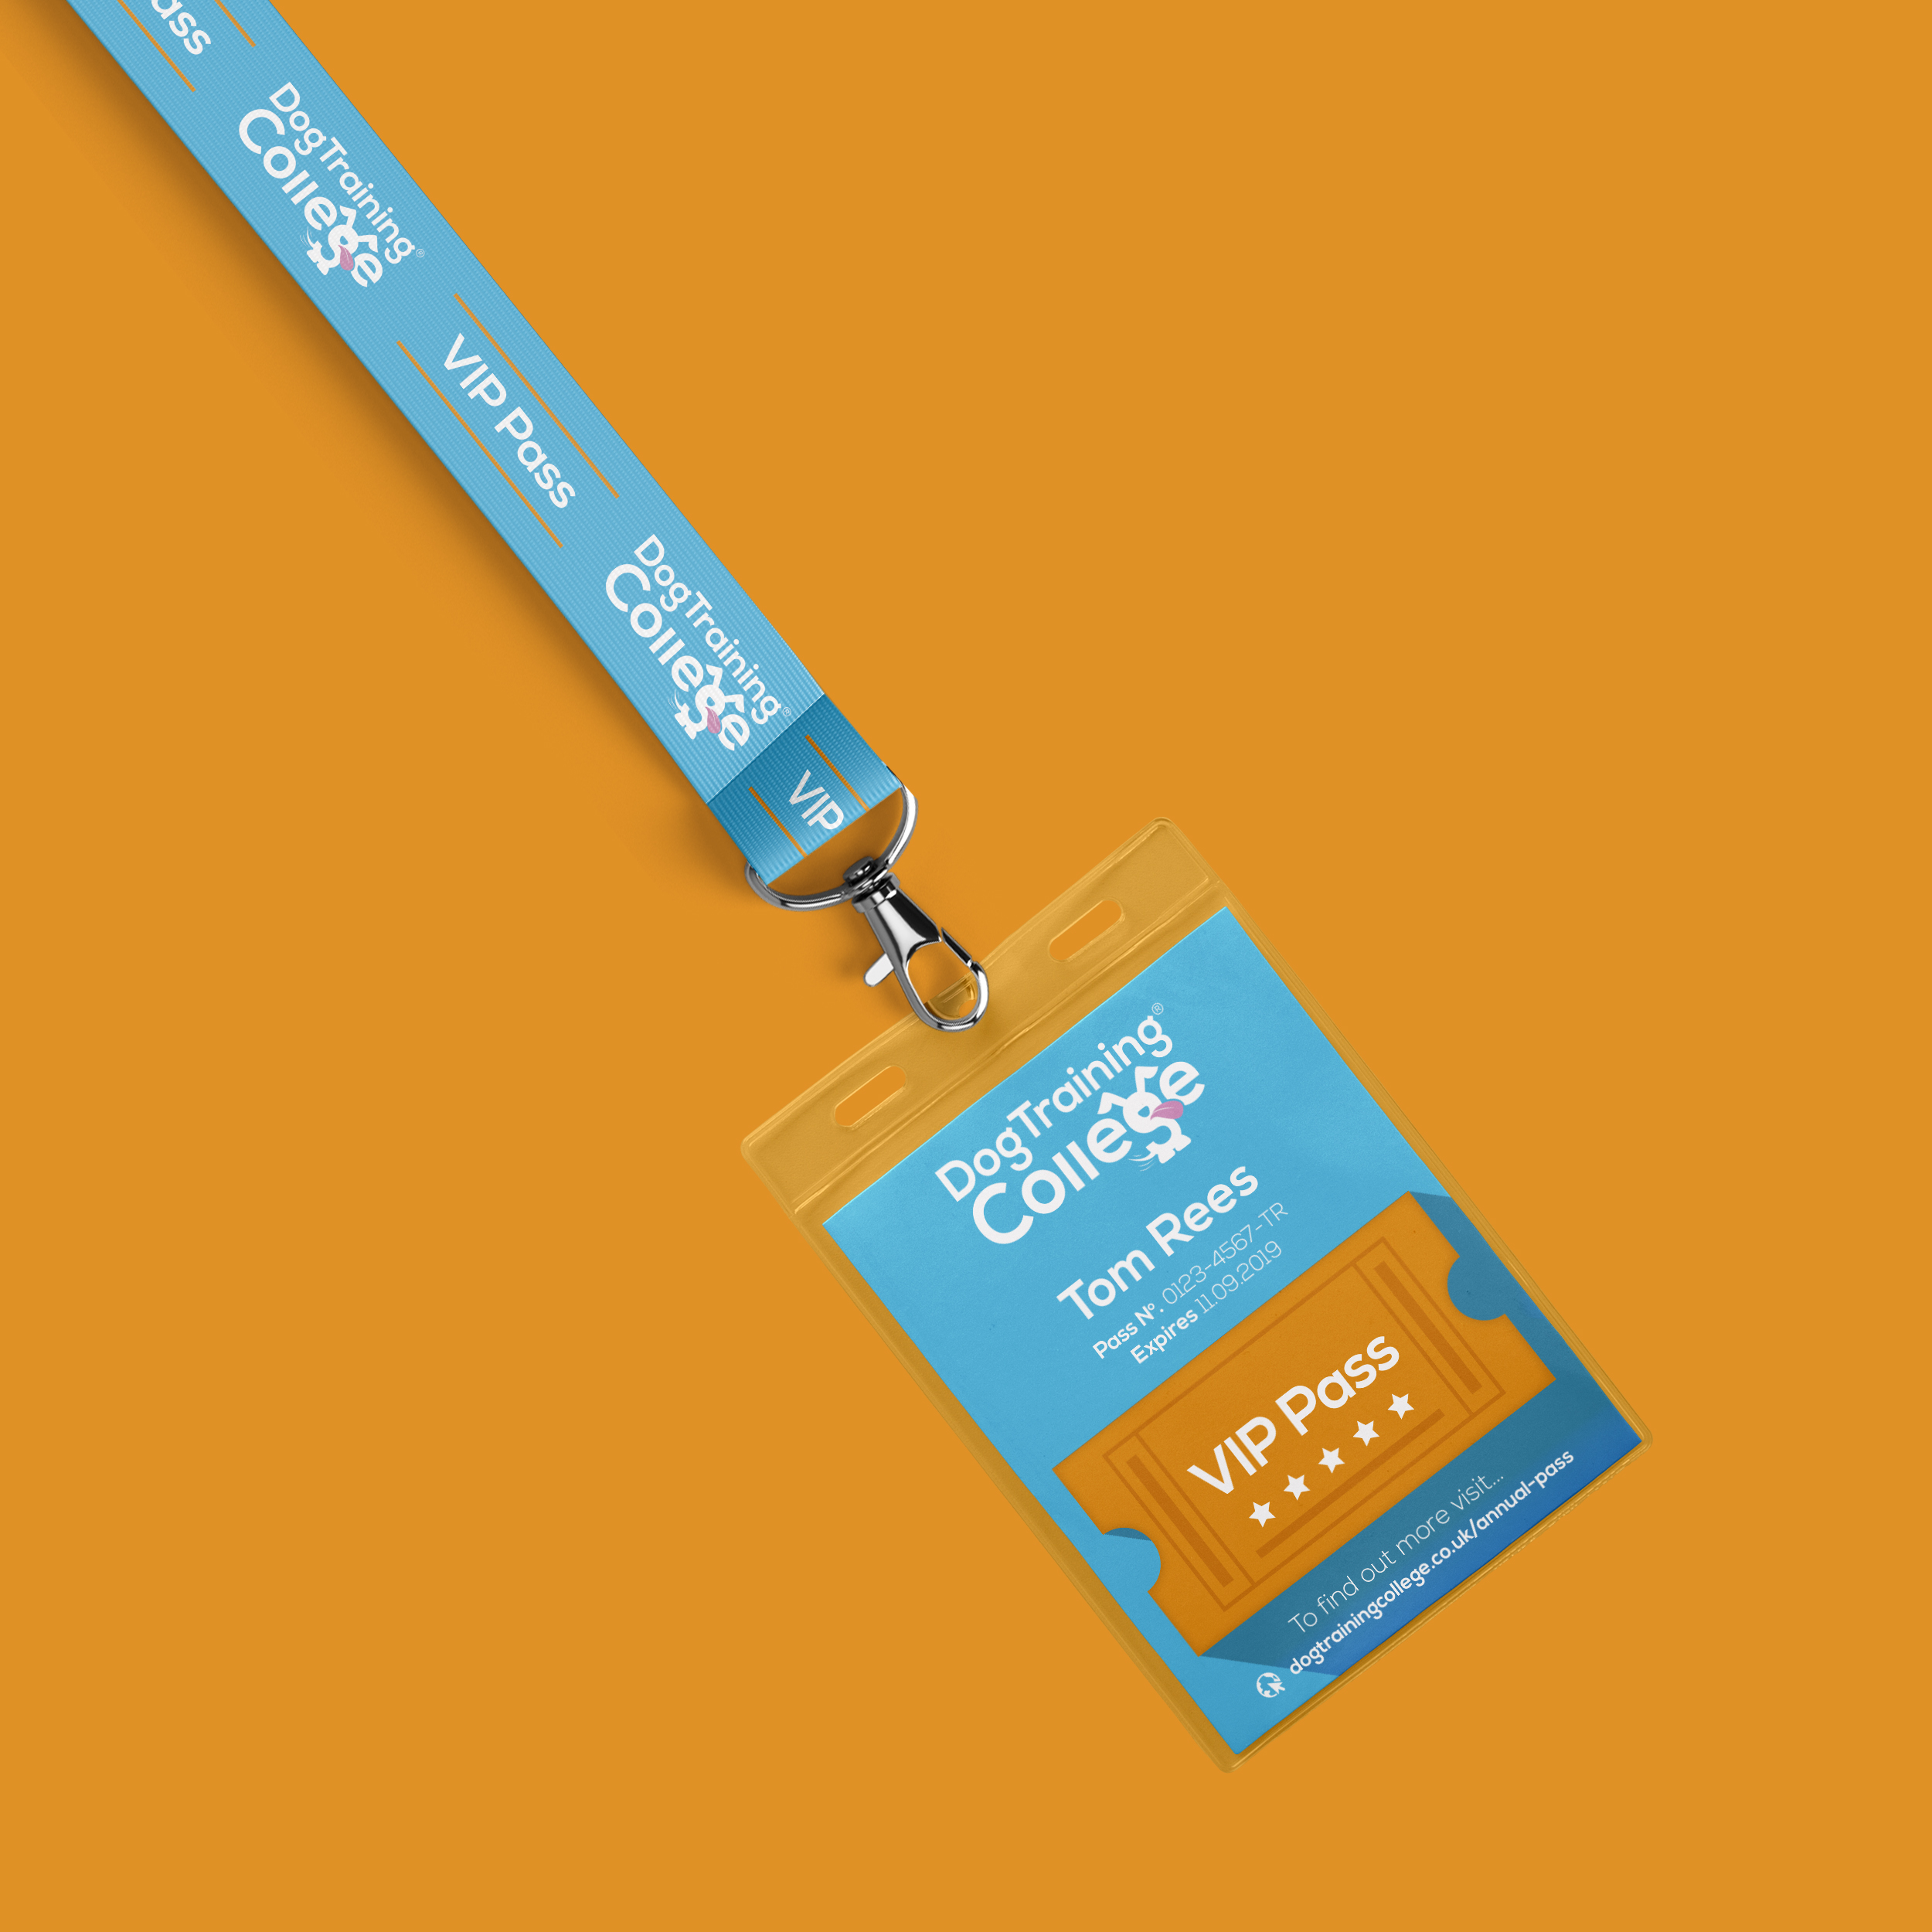 Lanyard For VIP Pass.jpg